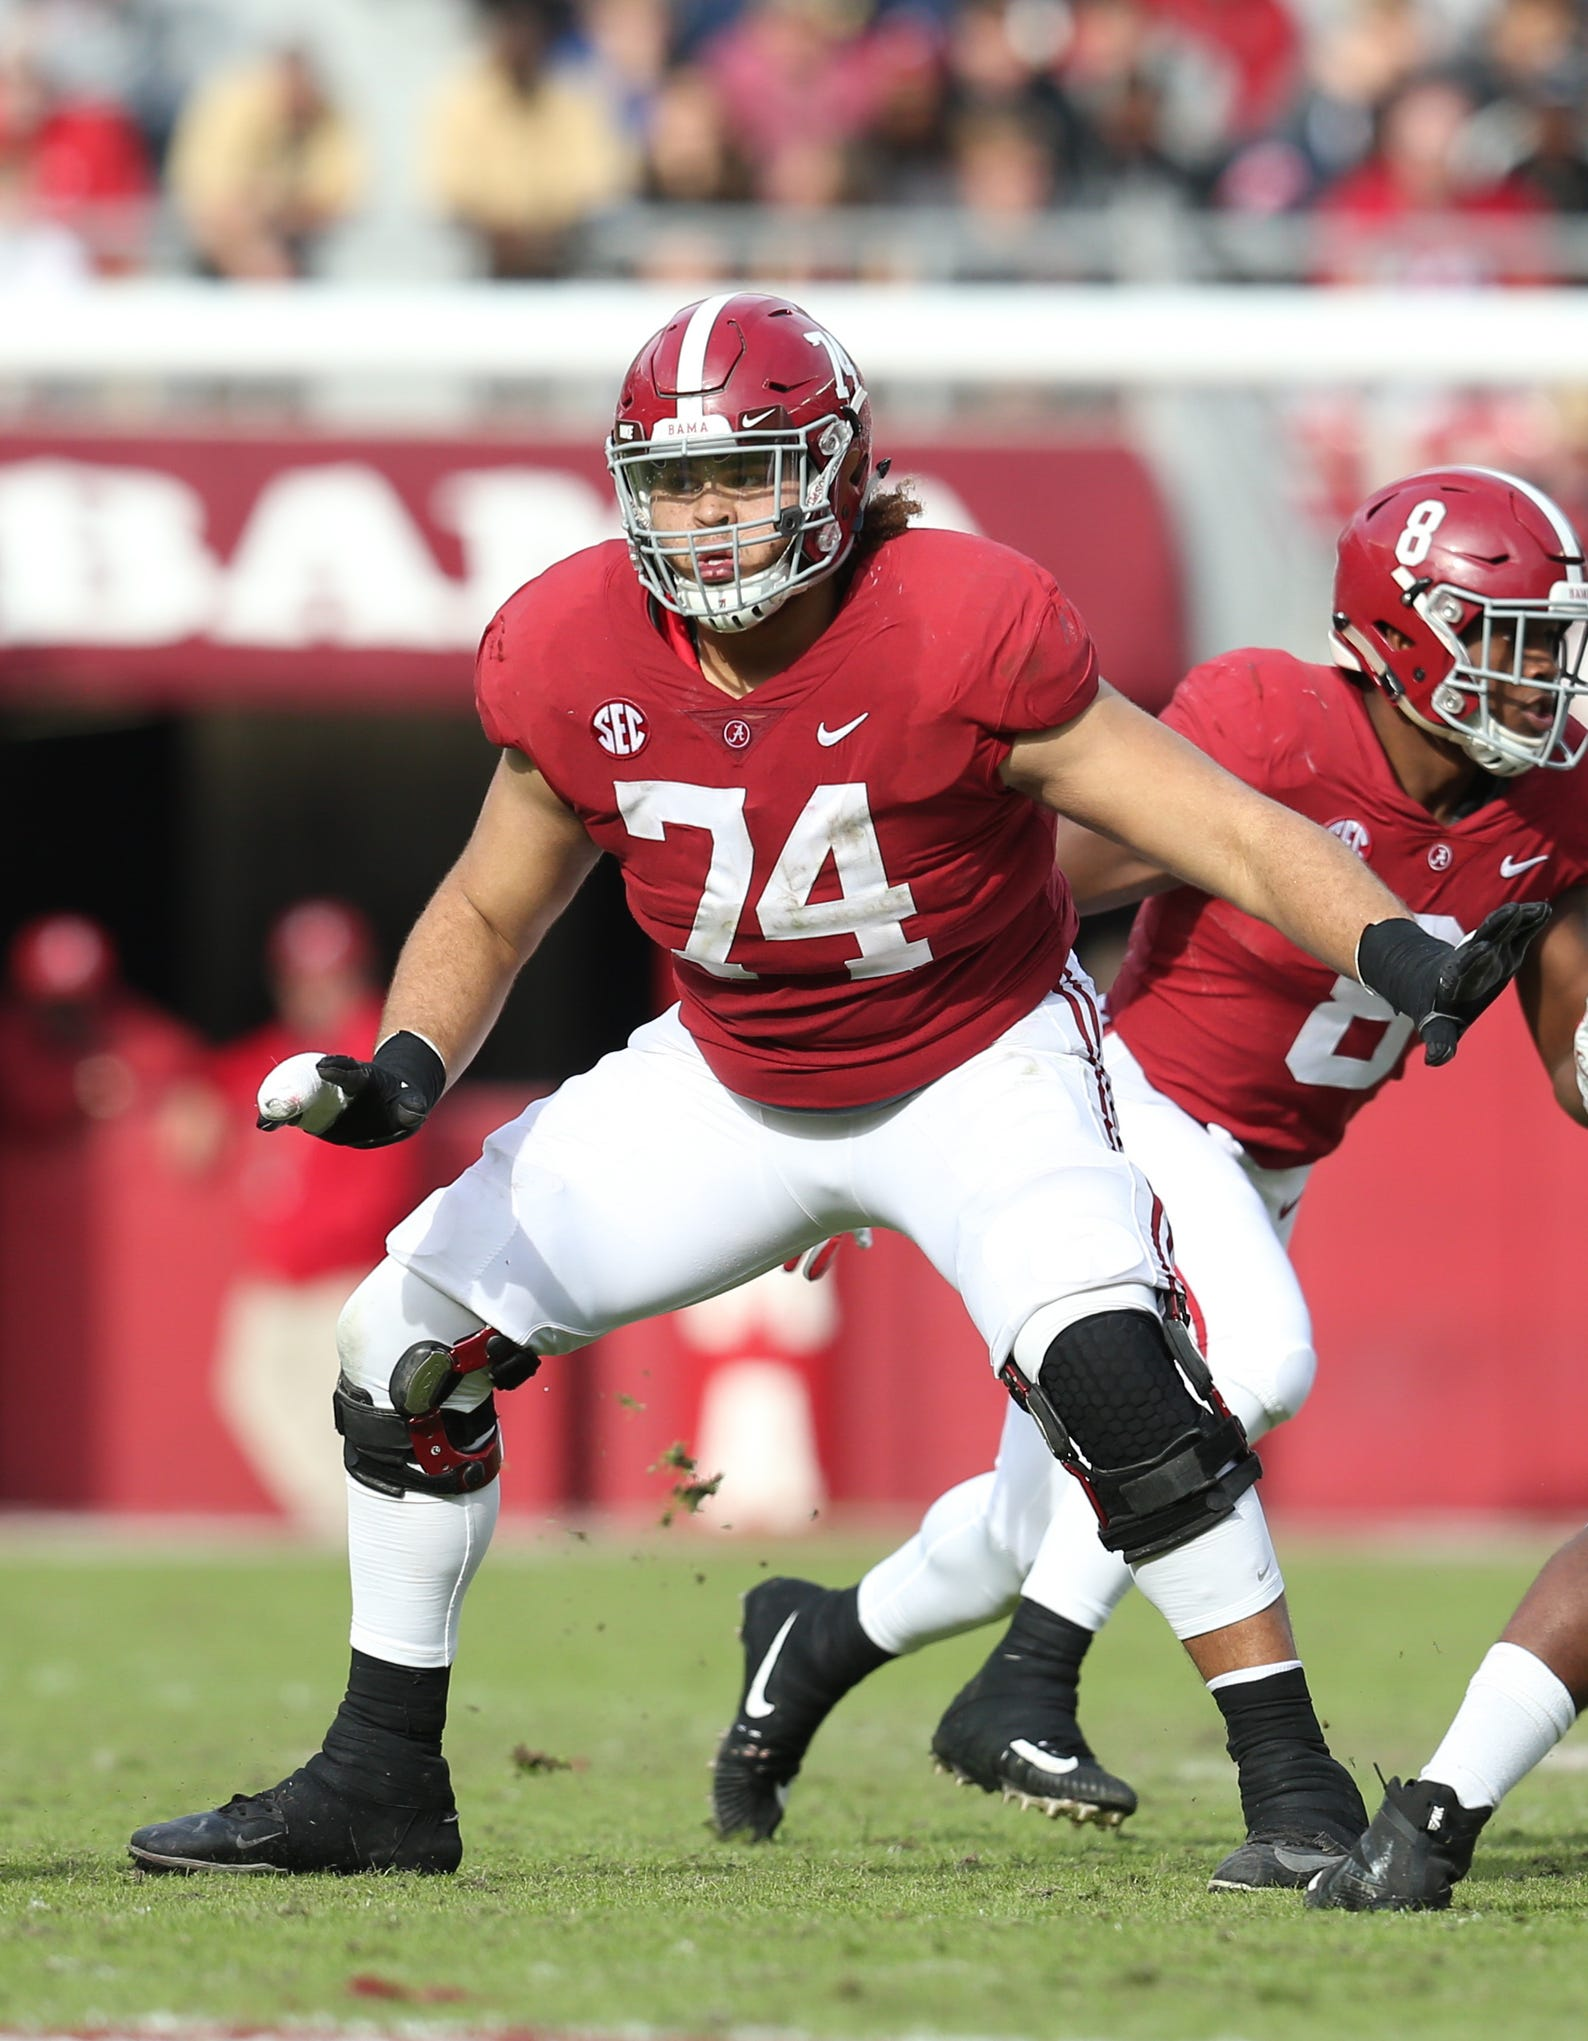 Jedrick Wills Jr.: A look at the Alabama football offensive lineman